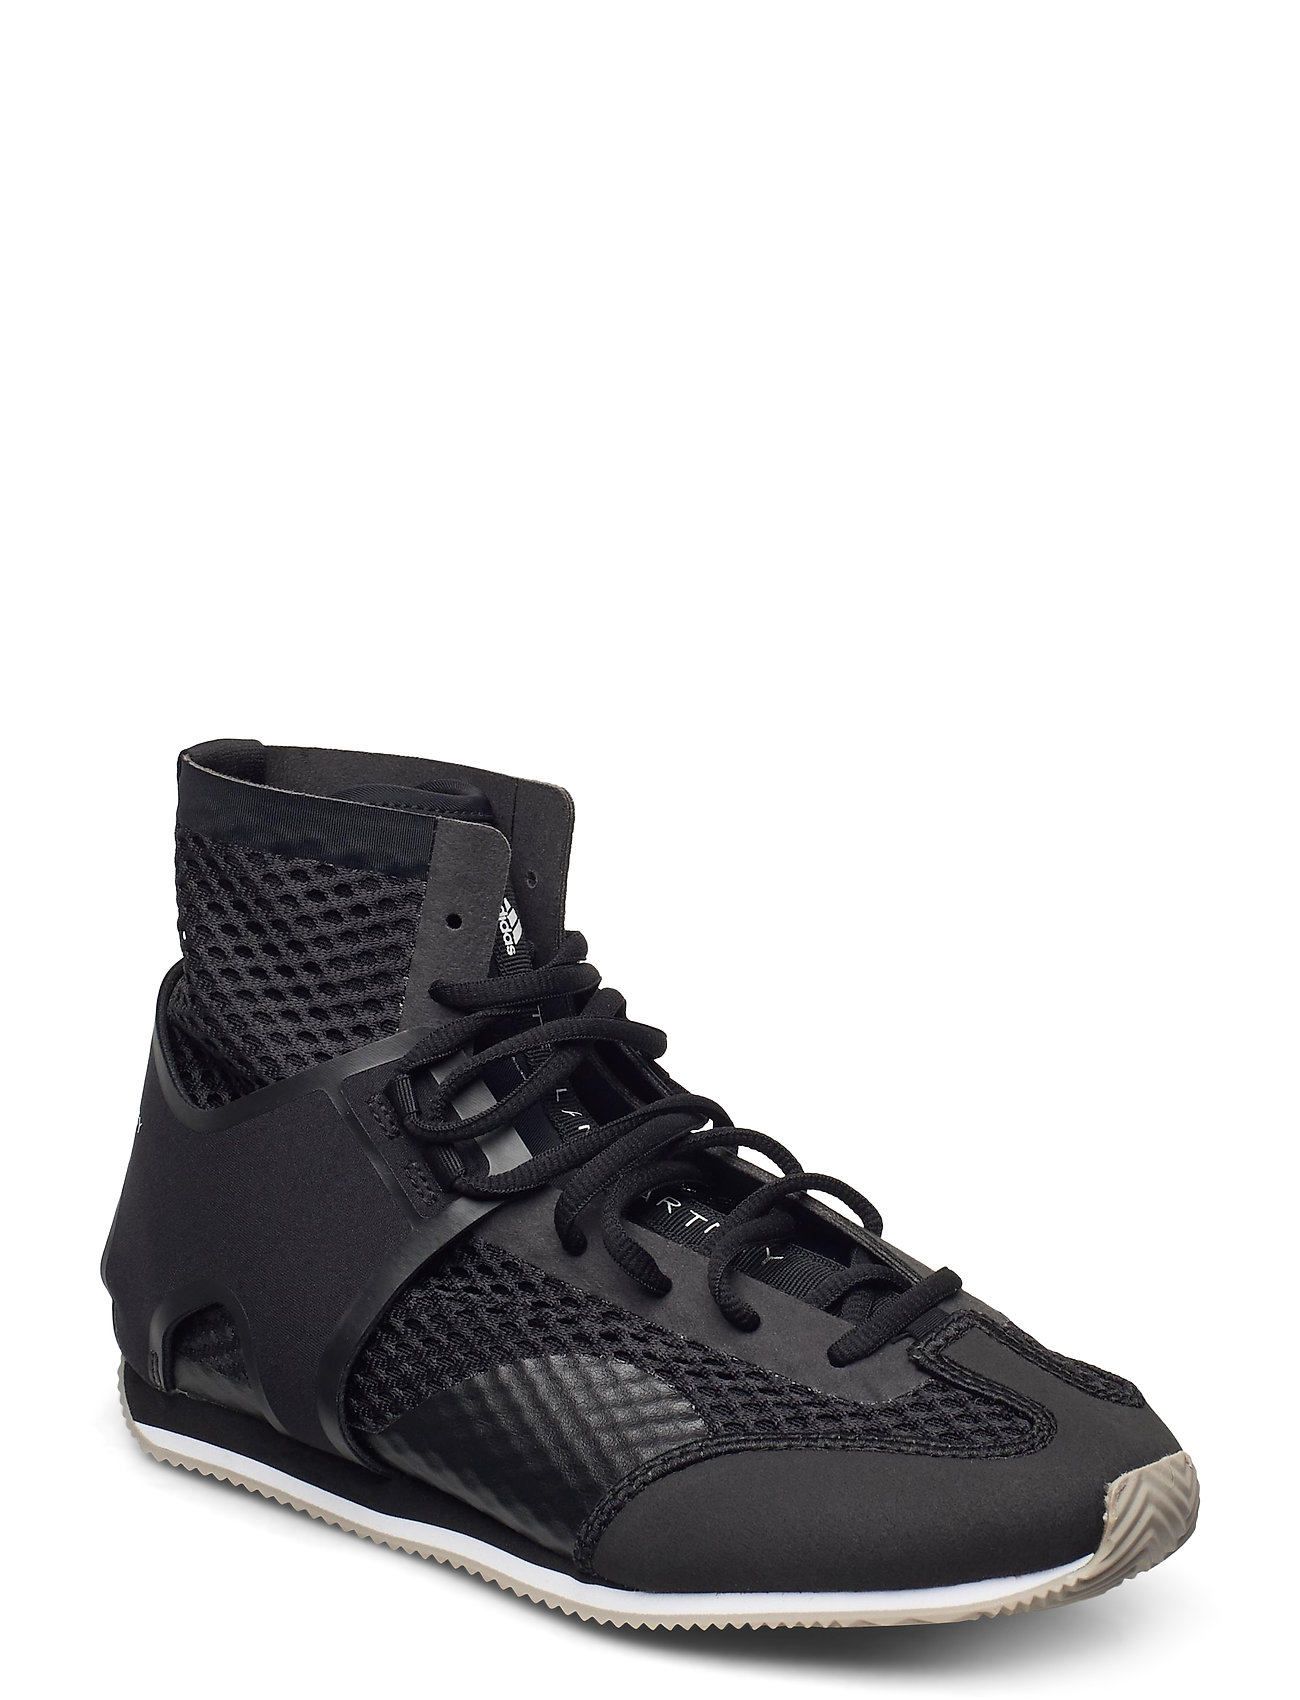 Image of Boxing Shoe S. Shoes Sport Shoes Training Shoes- Golf/tennis/fitness Sort Adidas By Stella McCartney (3457715317)